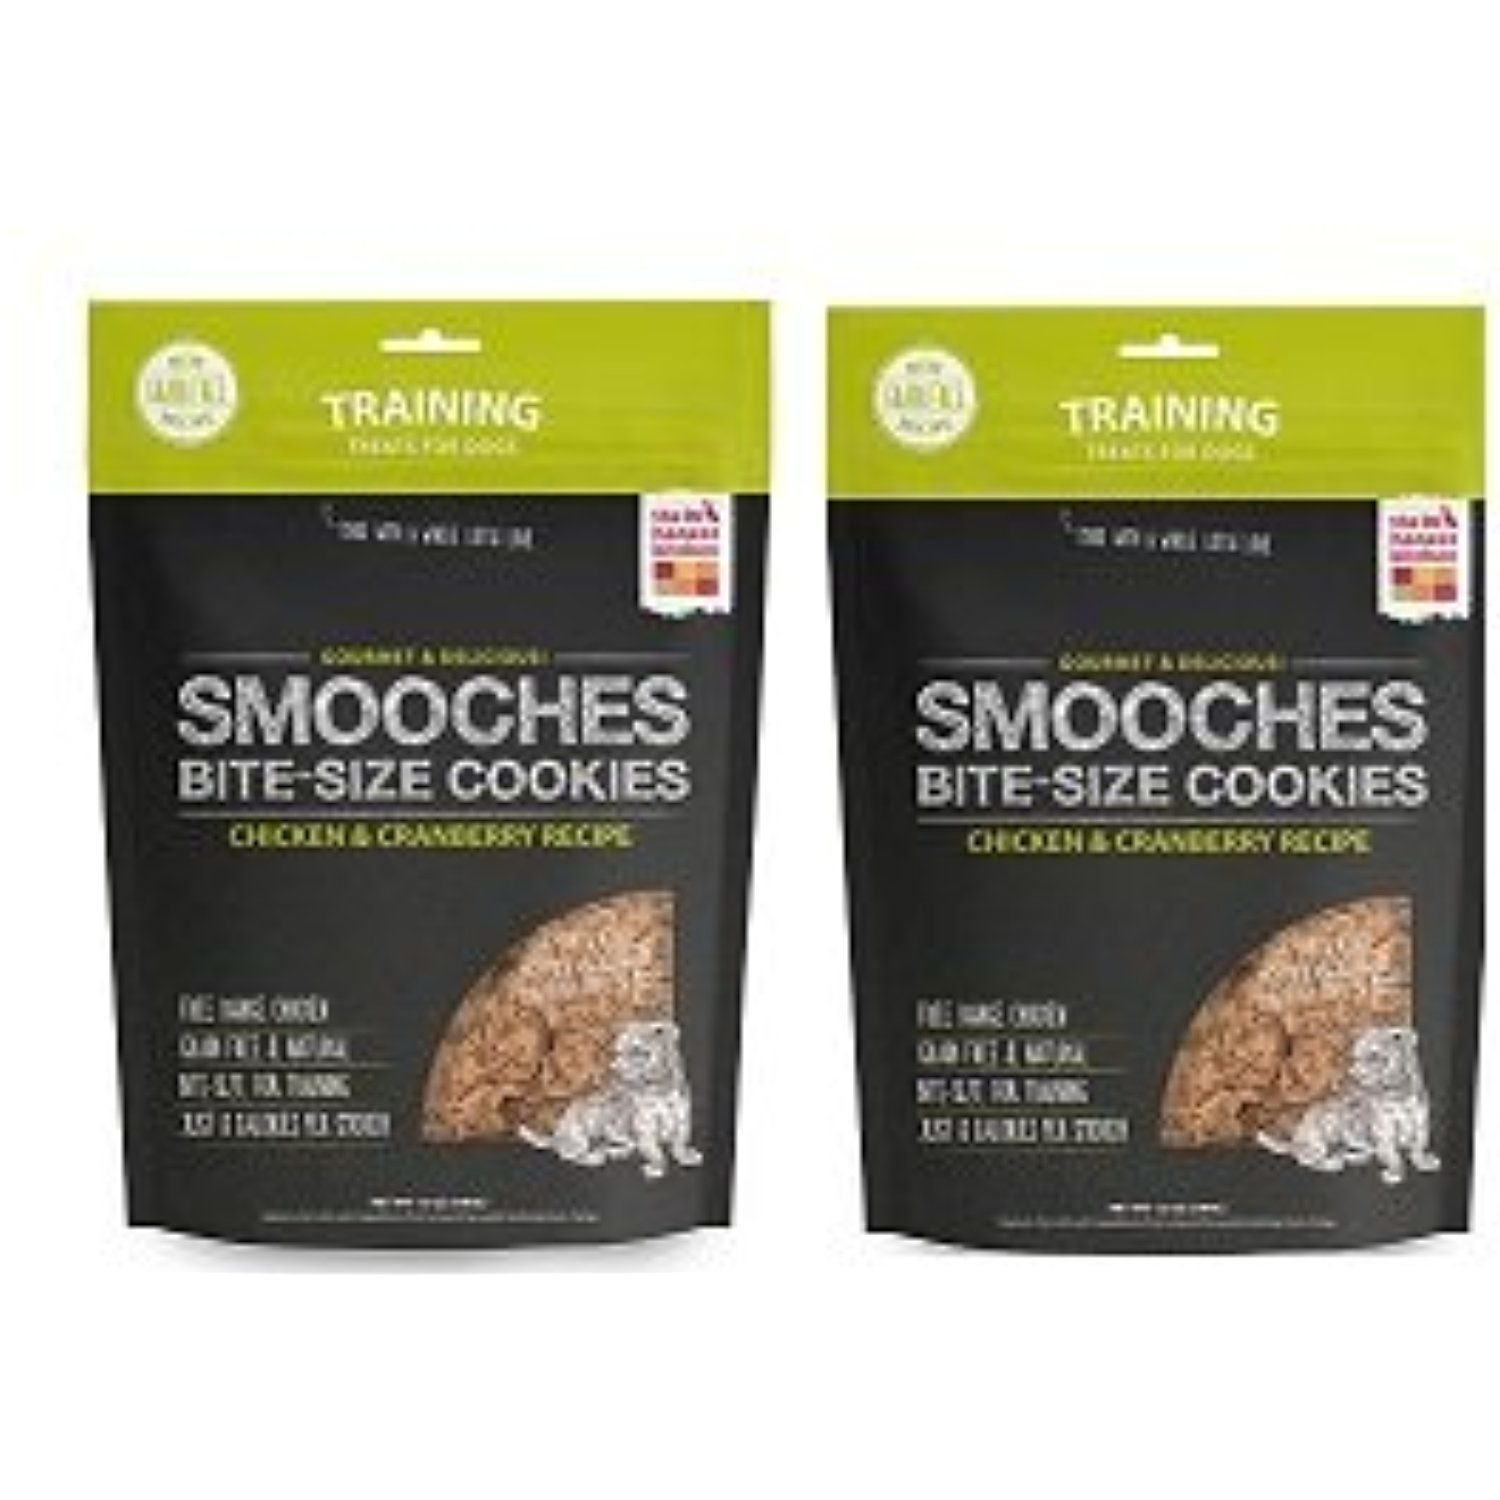 2 Pack The Honest Kitchen Smooches Natural Handbaked Grainfree Endearing Honest Kitchen Reviews 2018